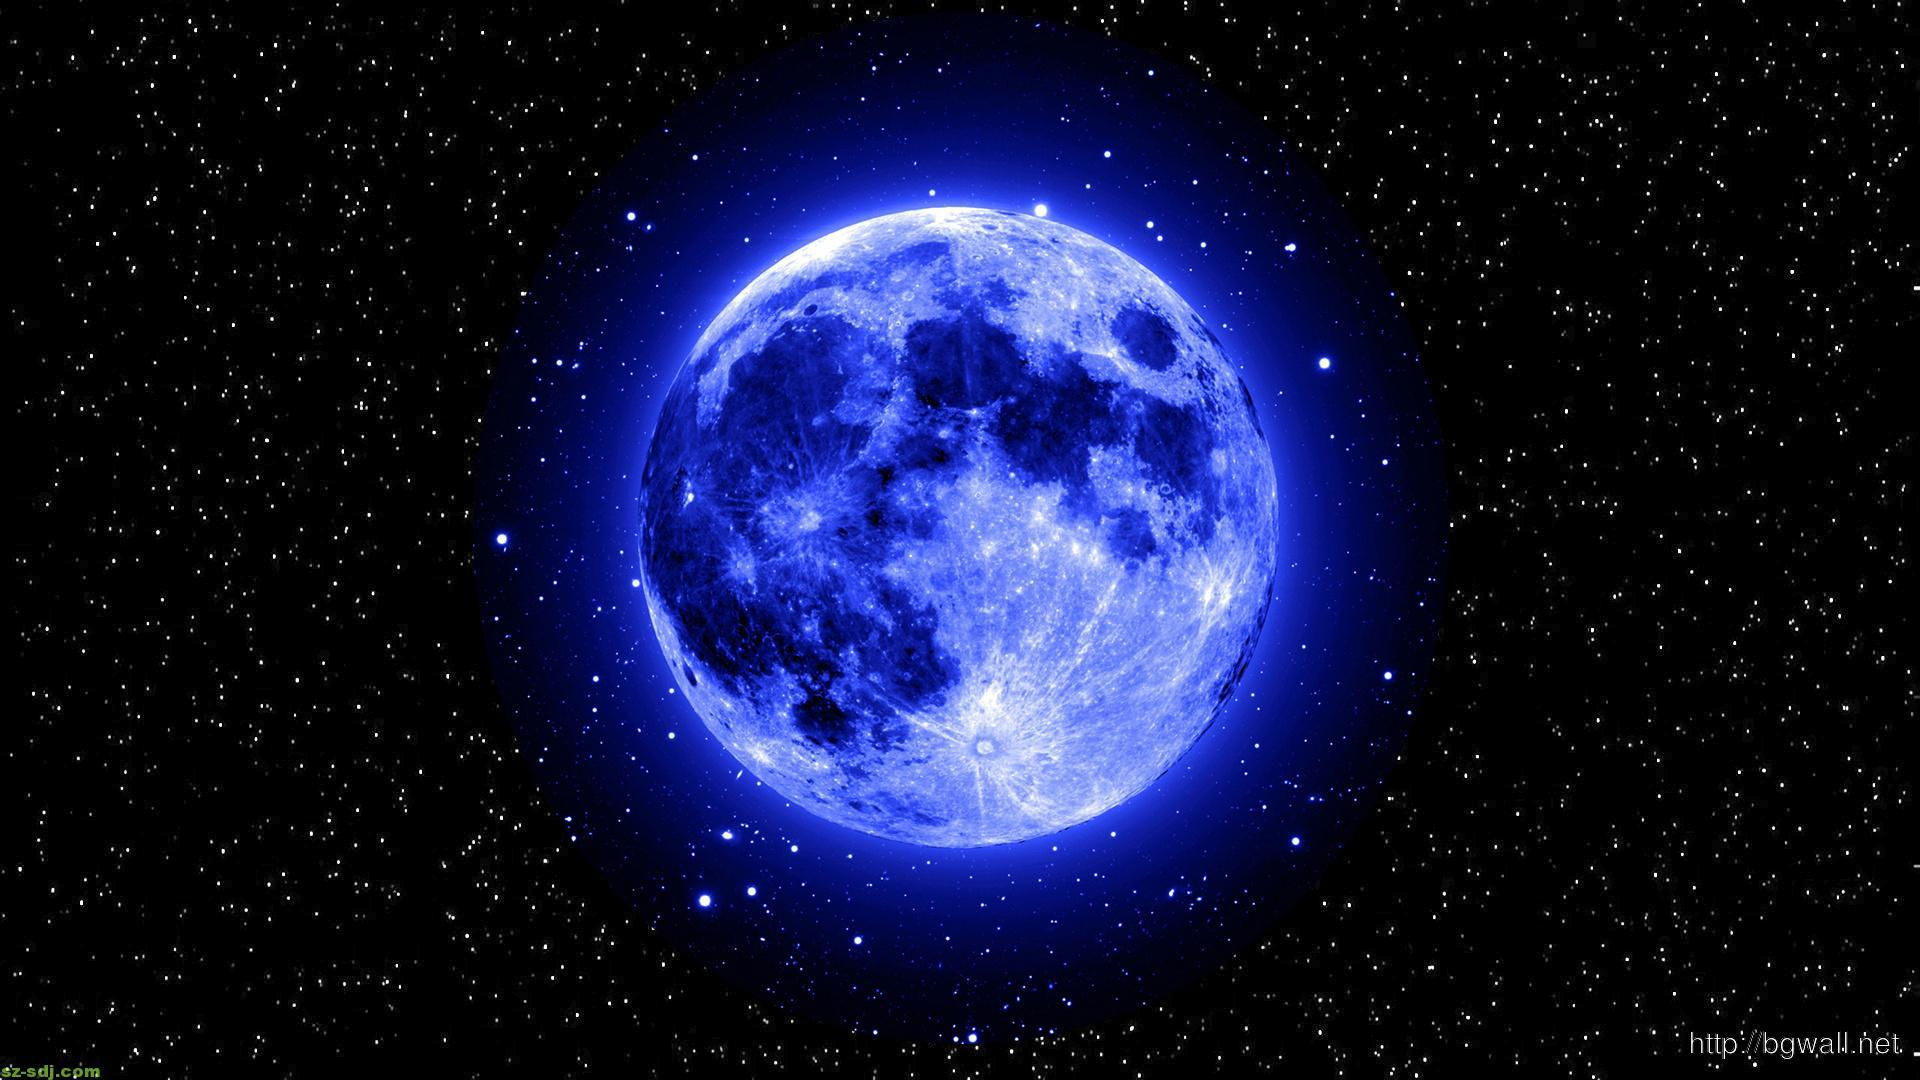 blue moon and star wallpaper widescreen – background wallpaper hd